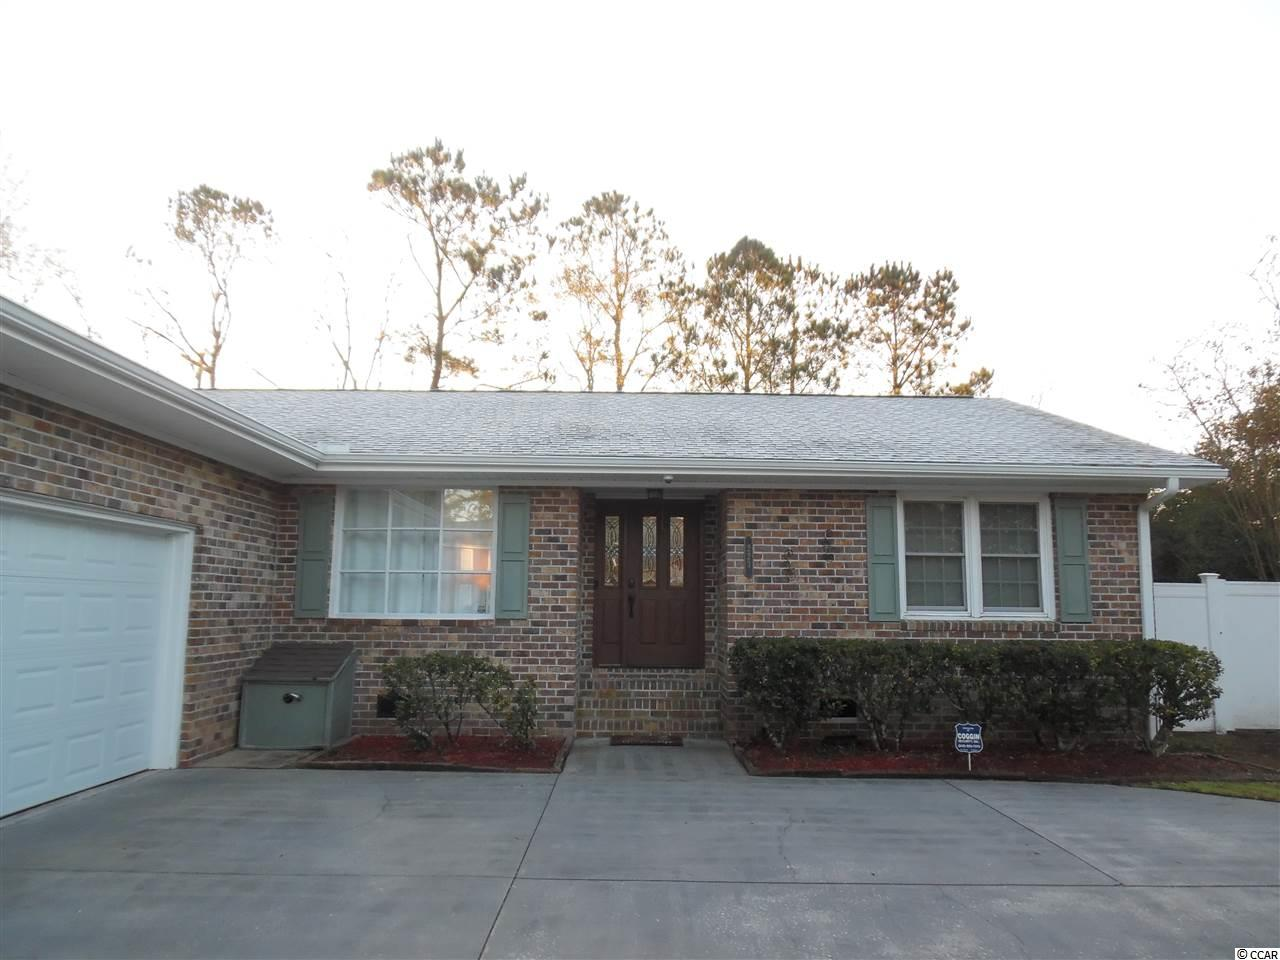 Wanting a cozy home with a fireplace, generous living area, situated on a large lot, fenced in back yard for Fido and close to everything? This 3 bedroom 2 bath home has a double door side load garage, is move in ready and is waiting for you! There is no required HOA or fees. Most of the homes are very well cared for in this community. Singleton Ridge Rd. runs behind this home which is the road that Conway Medical Center is on and all of the other newer medical facilities associated with CMC. Coastal Carolina University, HGTC and Miller-Mott all within a mile. This home is not your run of the mill cookie cutter, built on a generous crawl space and is an all brick home that has granite counter tops, glass and copper backsplash and custom cabinets throughout. There is new laminate wood flooring in a beautiful shade of gray to give it that beach feel. New carpet in all of the bedrooms and closets. All Whirlpool Stainless Steel appliances. Huge entertainment deck on the rear and plenty of parking in the extended driveway. Plenty of exterior storage and a new concrete slab for another hobby house. Close to shopping, fire stations and less than 15 miles to the beautiful Atlantic Ocean! Call for a showing soon. Seller willing to contribute toward buyer's closing costs and is offering a Buyer's Agent  Bonus with acceptable offer.